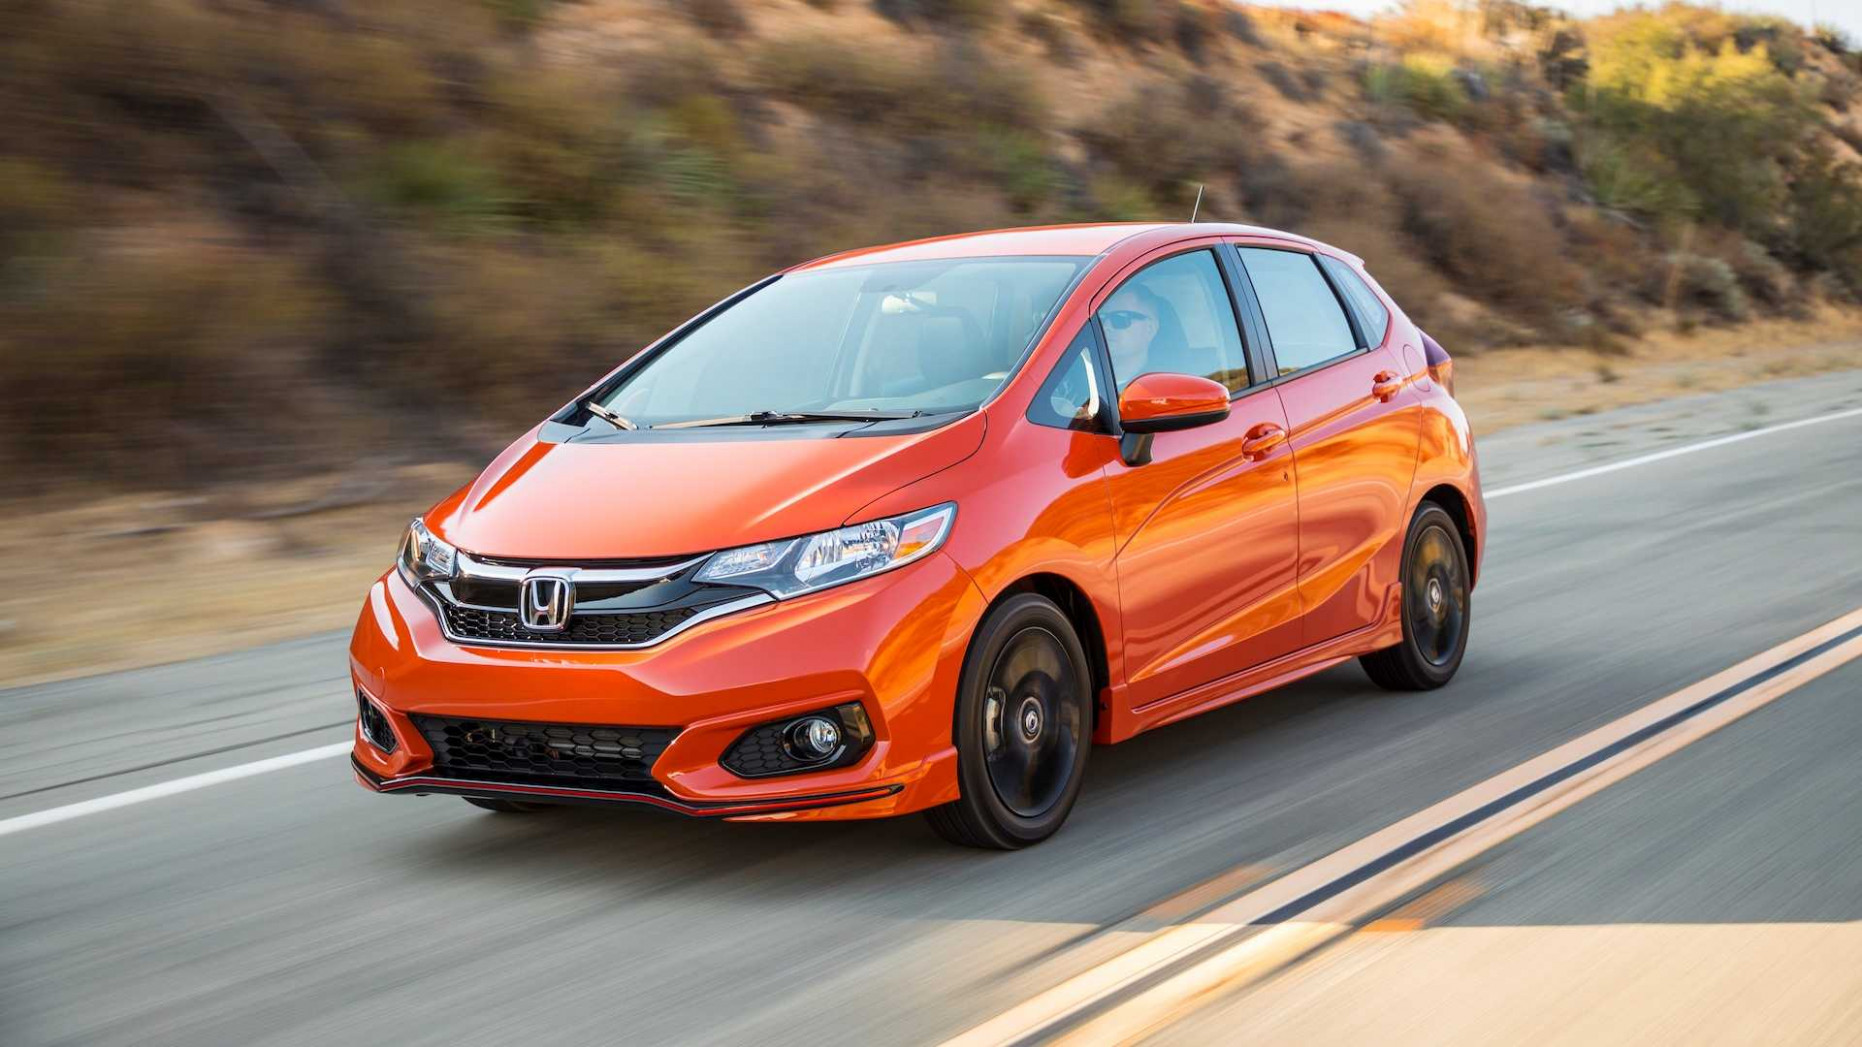 U.S. Stuck With The Old Honda Fit For 6MY